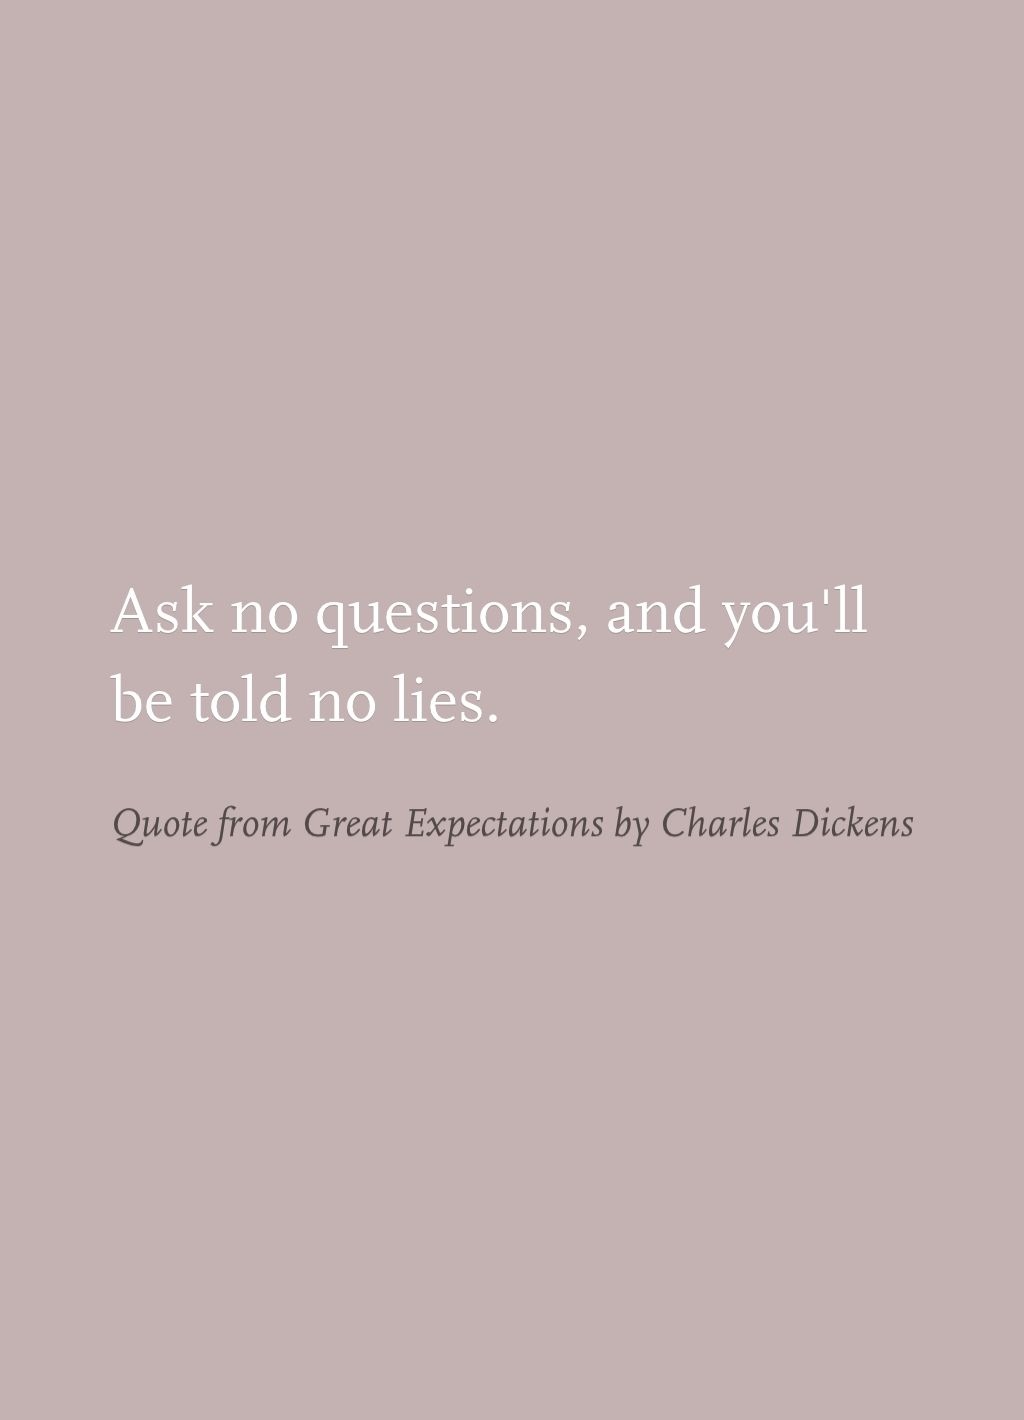 quote from great expectations by charles dickens the highlight quote from great expectations by charles dickens u know im reading this my class and its actually reeeeeeaaallly good